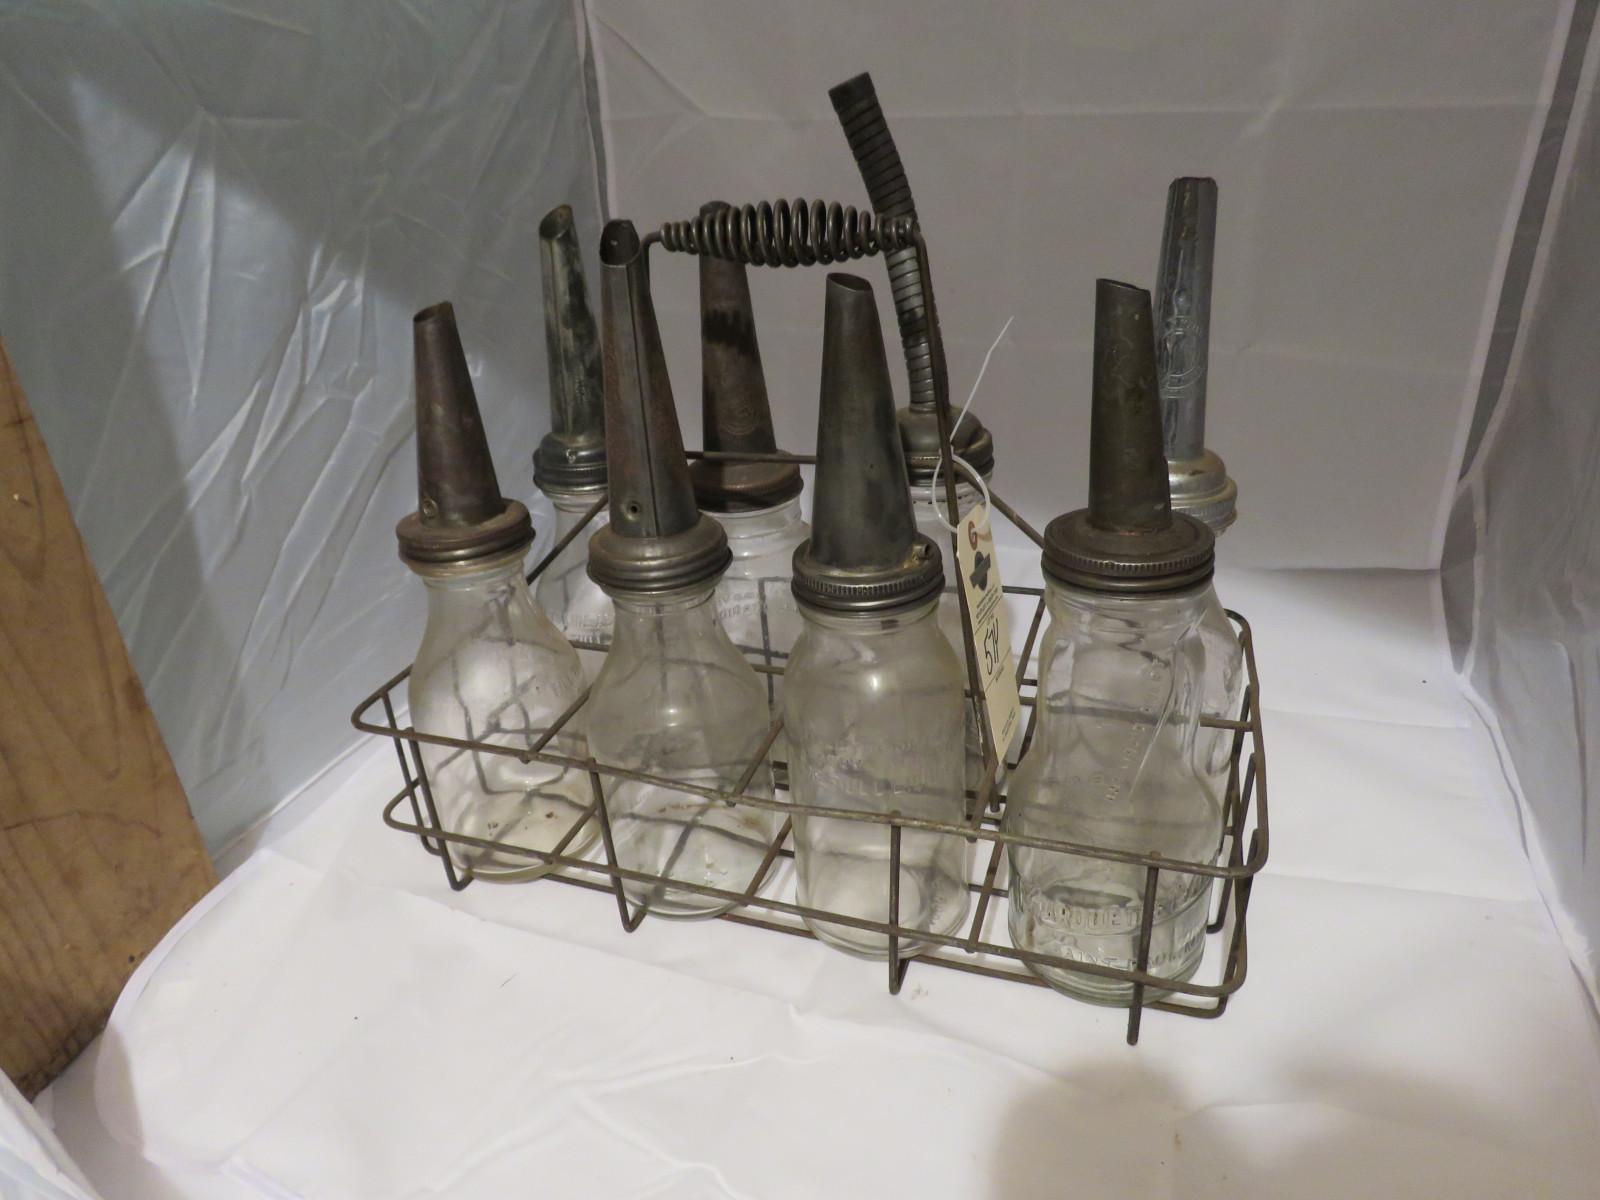 Vintage Glass Oil Bottles and Rack - Image 1